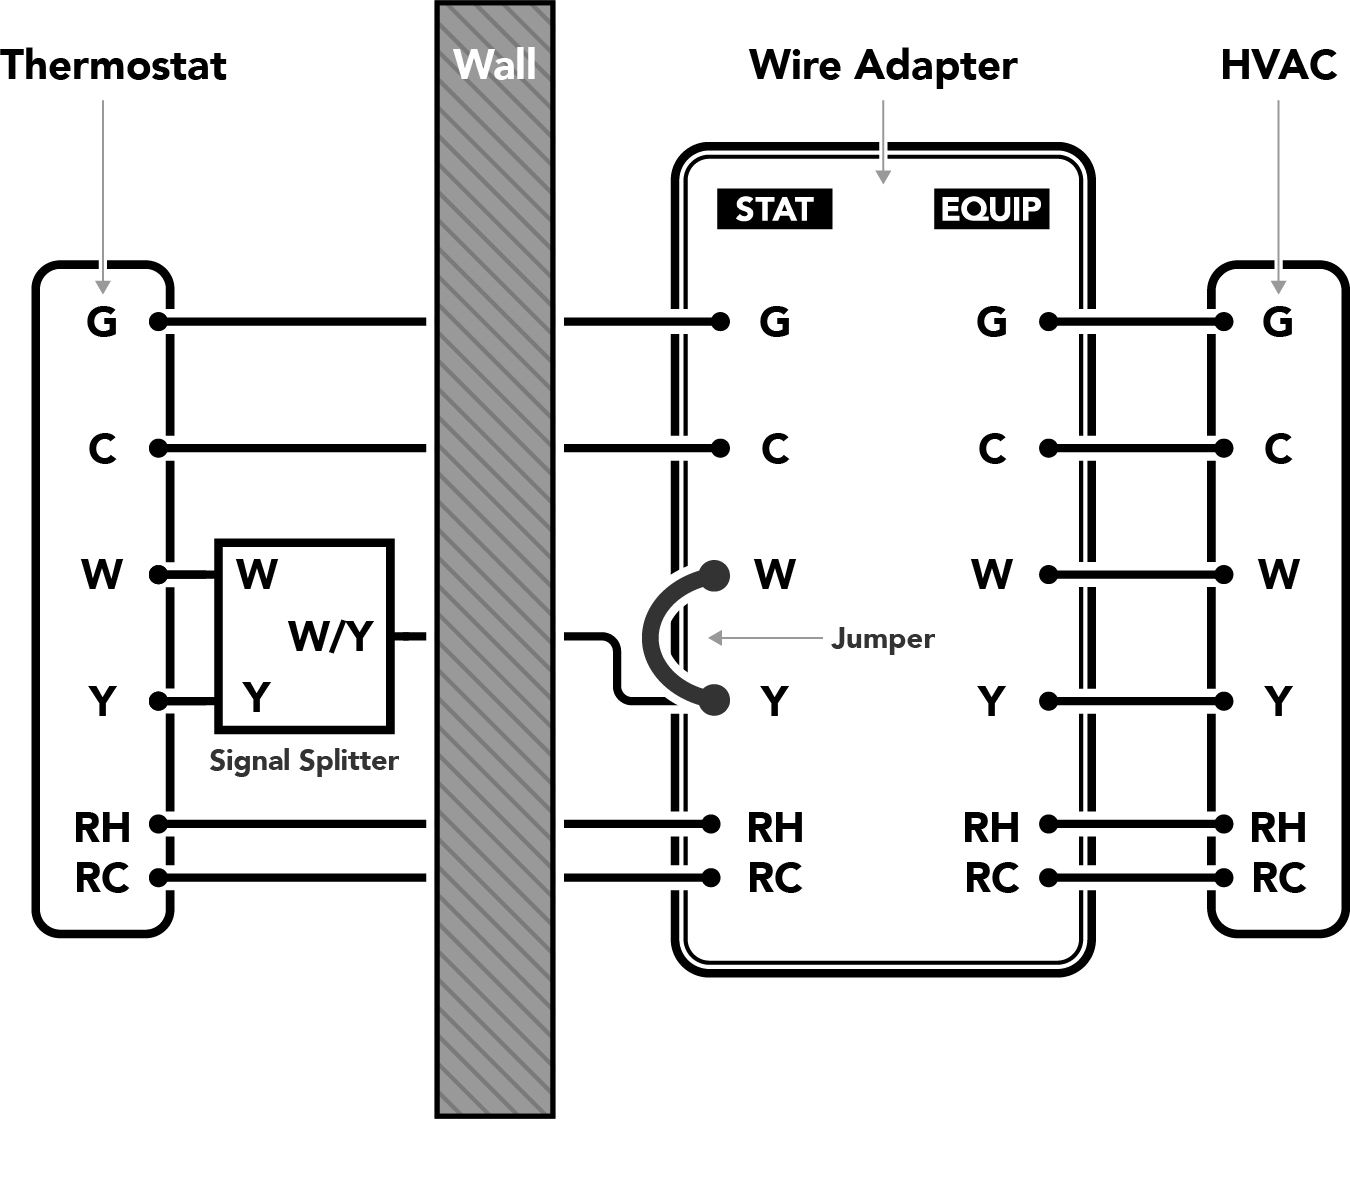 hight resolution of diagram 02 conventional heat and ac 5 wires 2015 11 17 v3 conventional heat